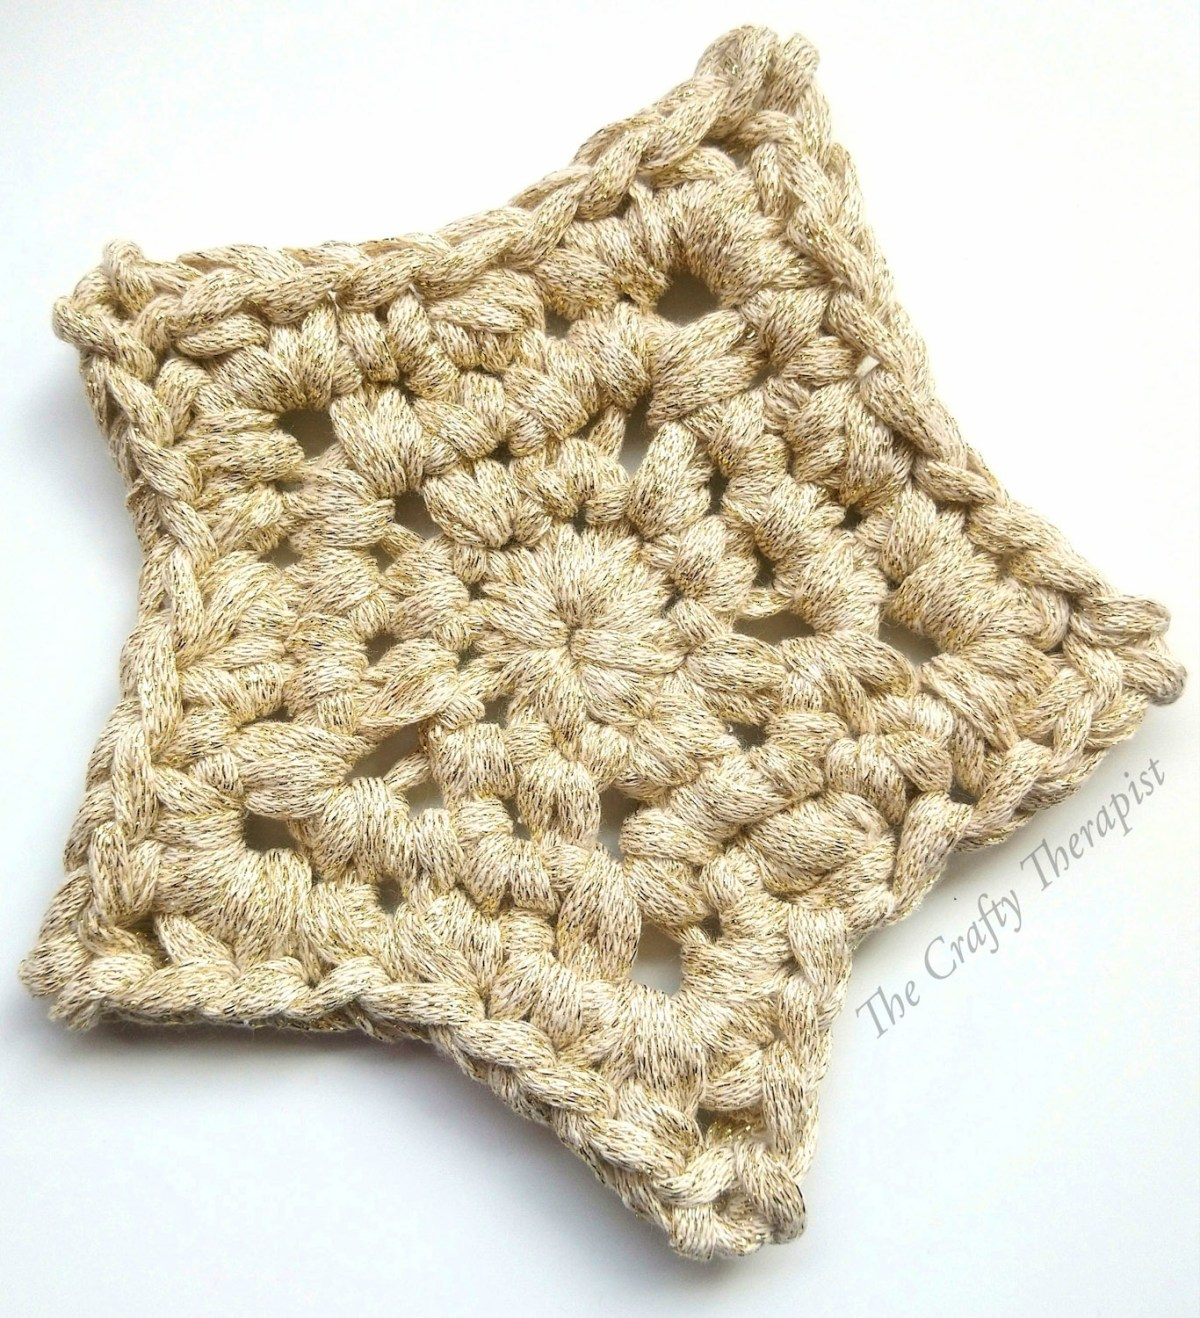 Crochet Star Coaster in Gold free crochet pattern